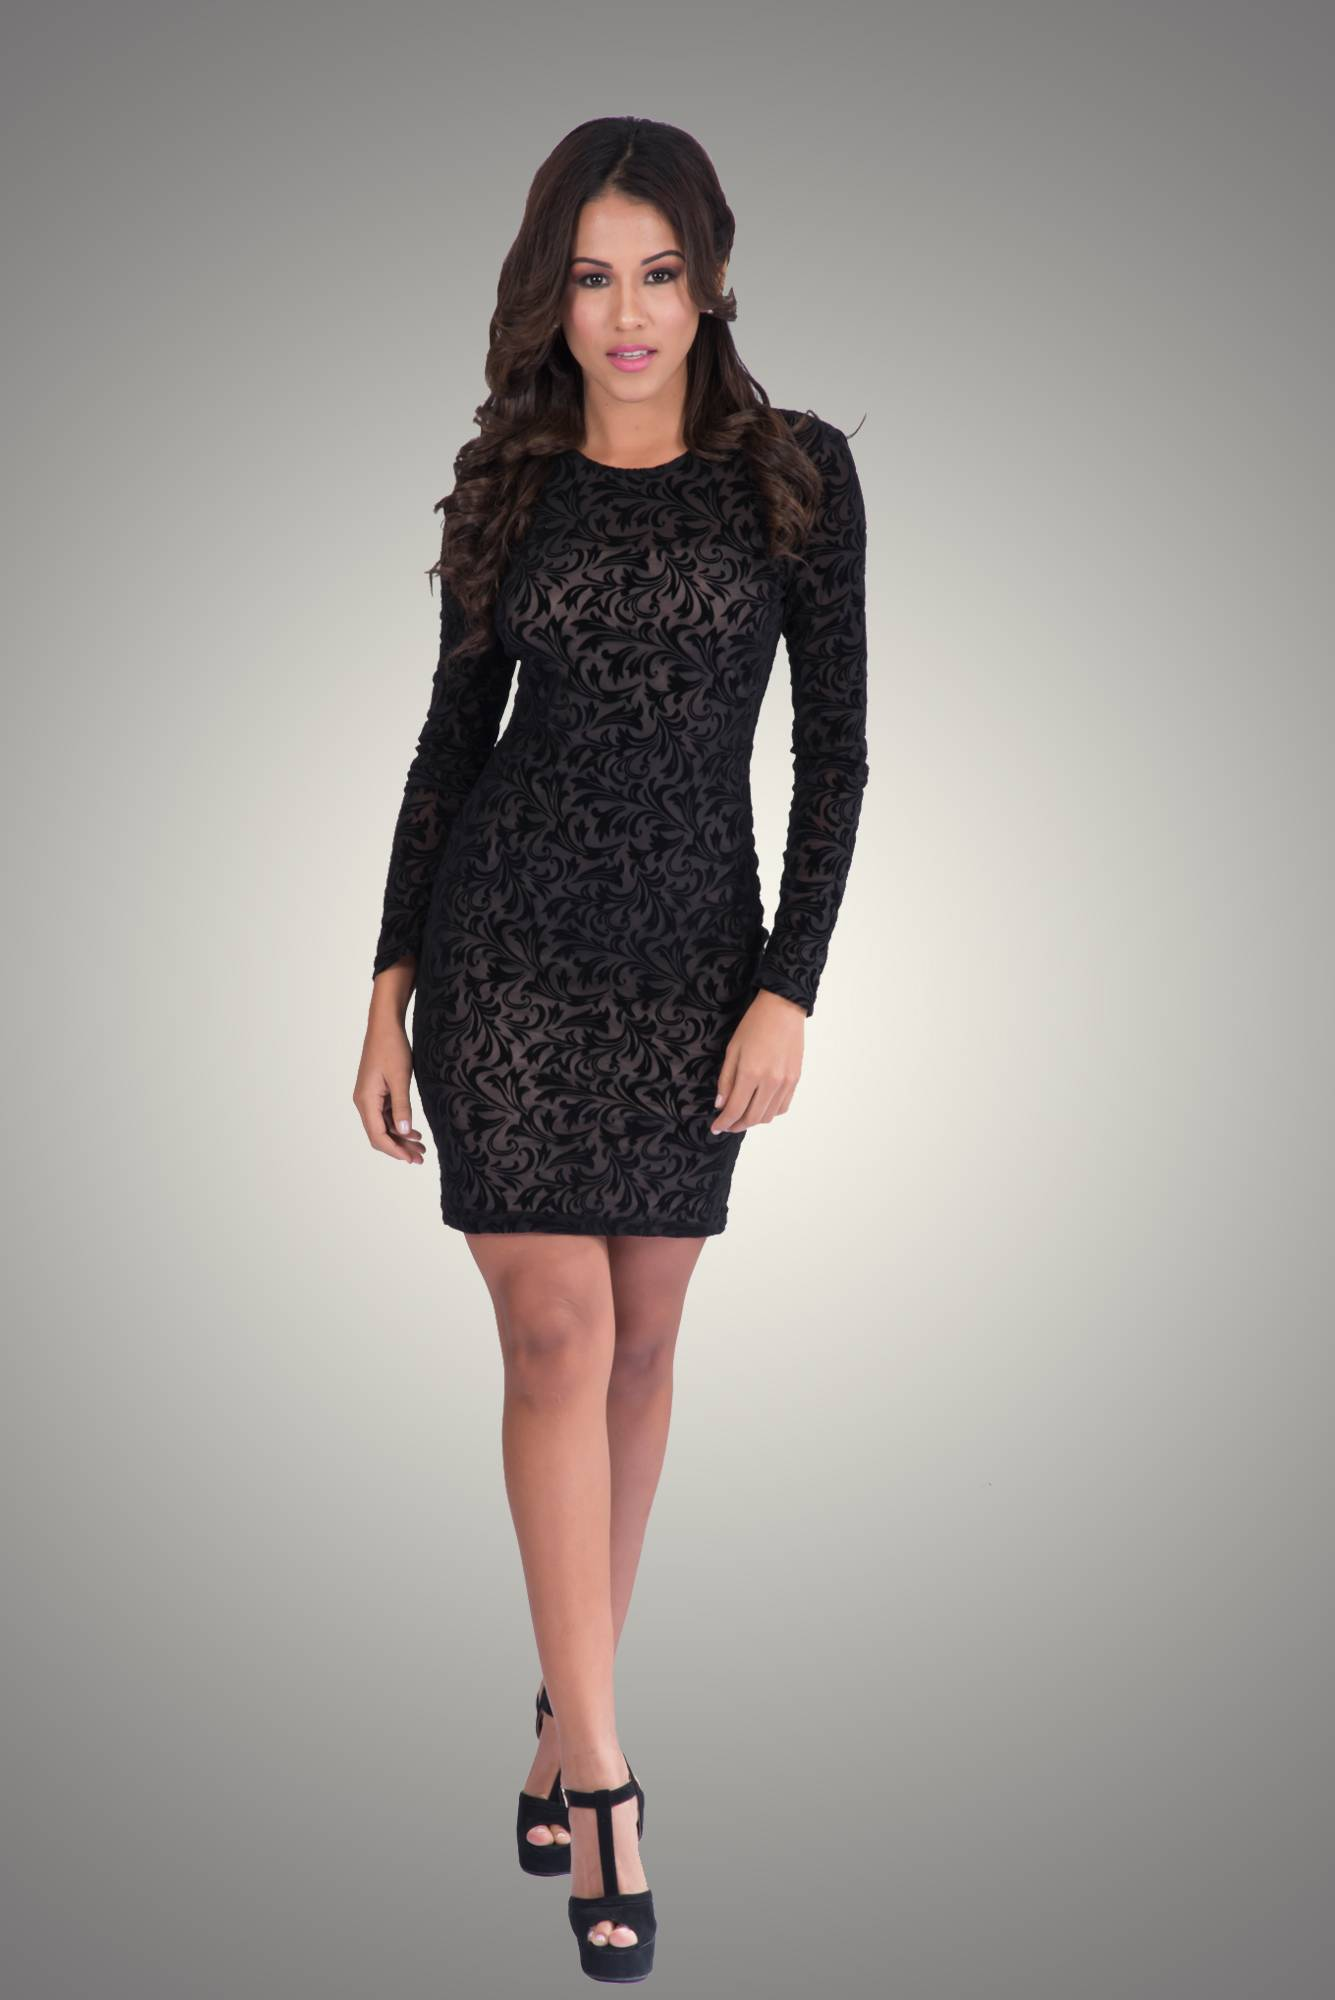 Velvet-Bodycon-Lace-Design-Dress-2-C